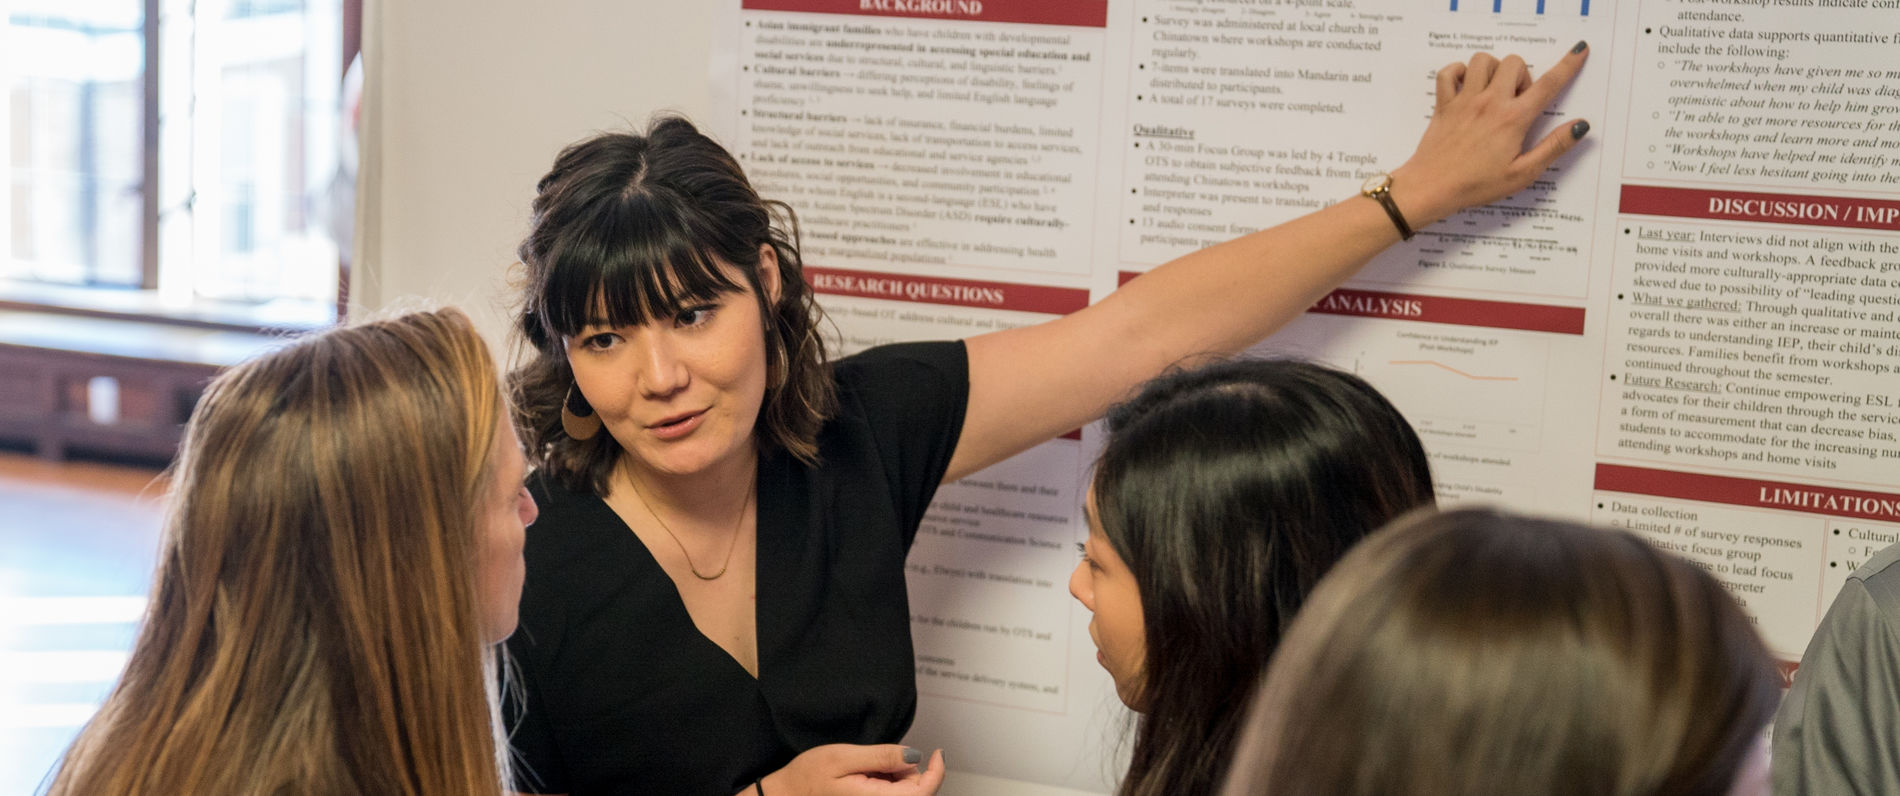 Girl pointing at a research poster